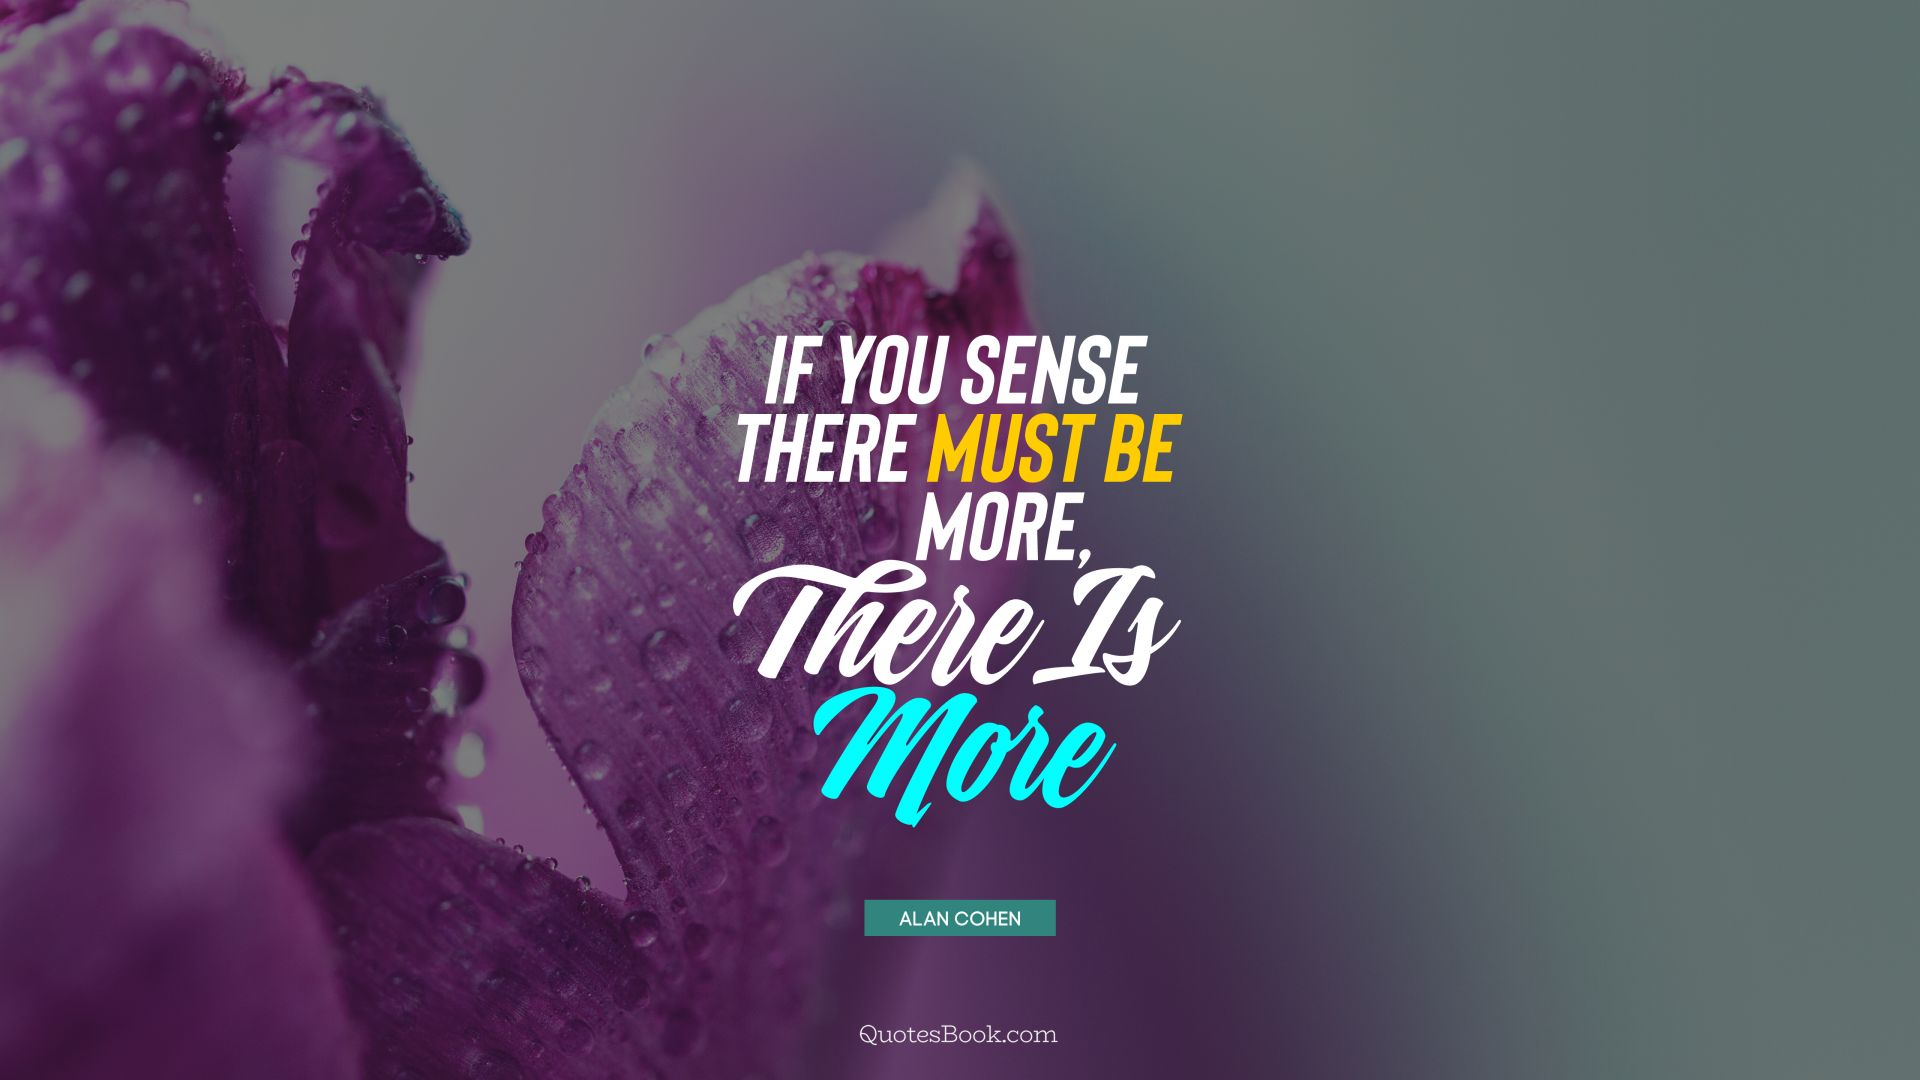 inspirational-quote-if-you-sense-there-must-be-more-there-is-more-4274.jpg